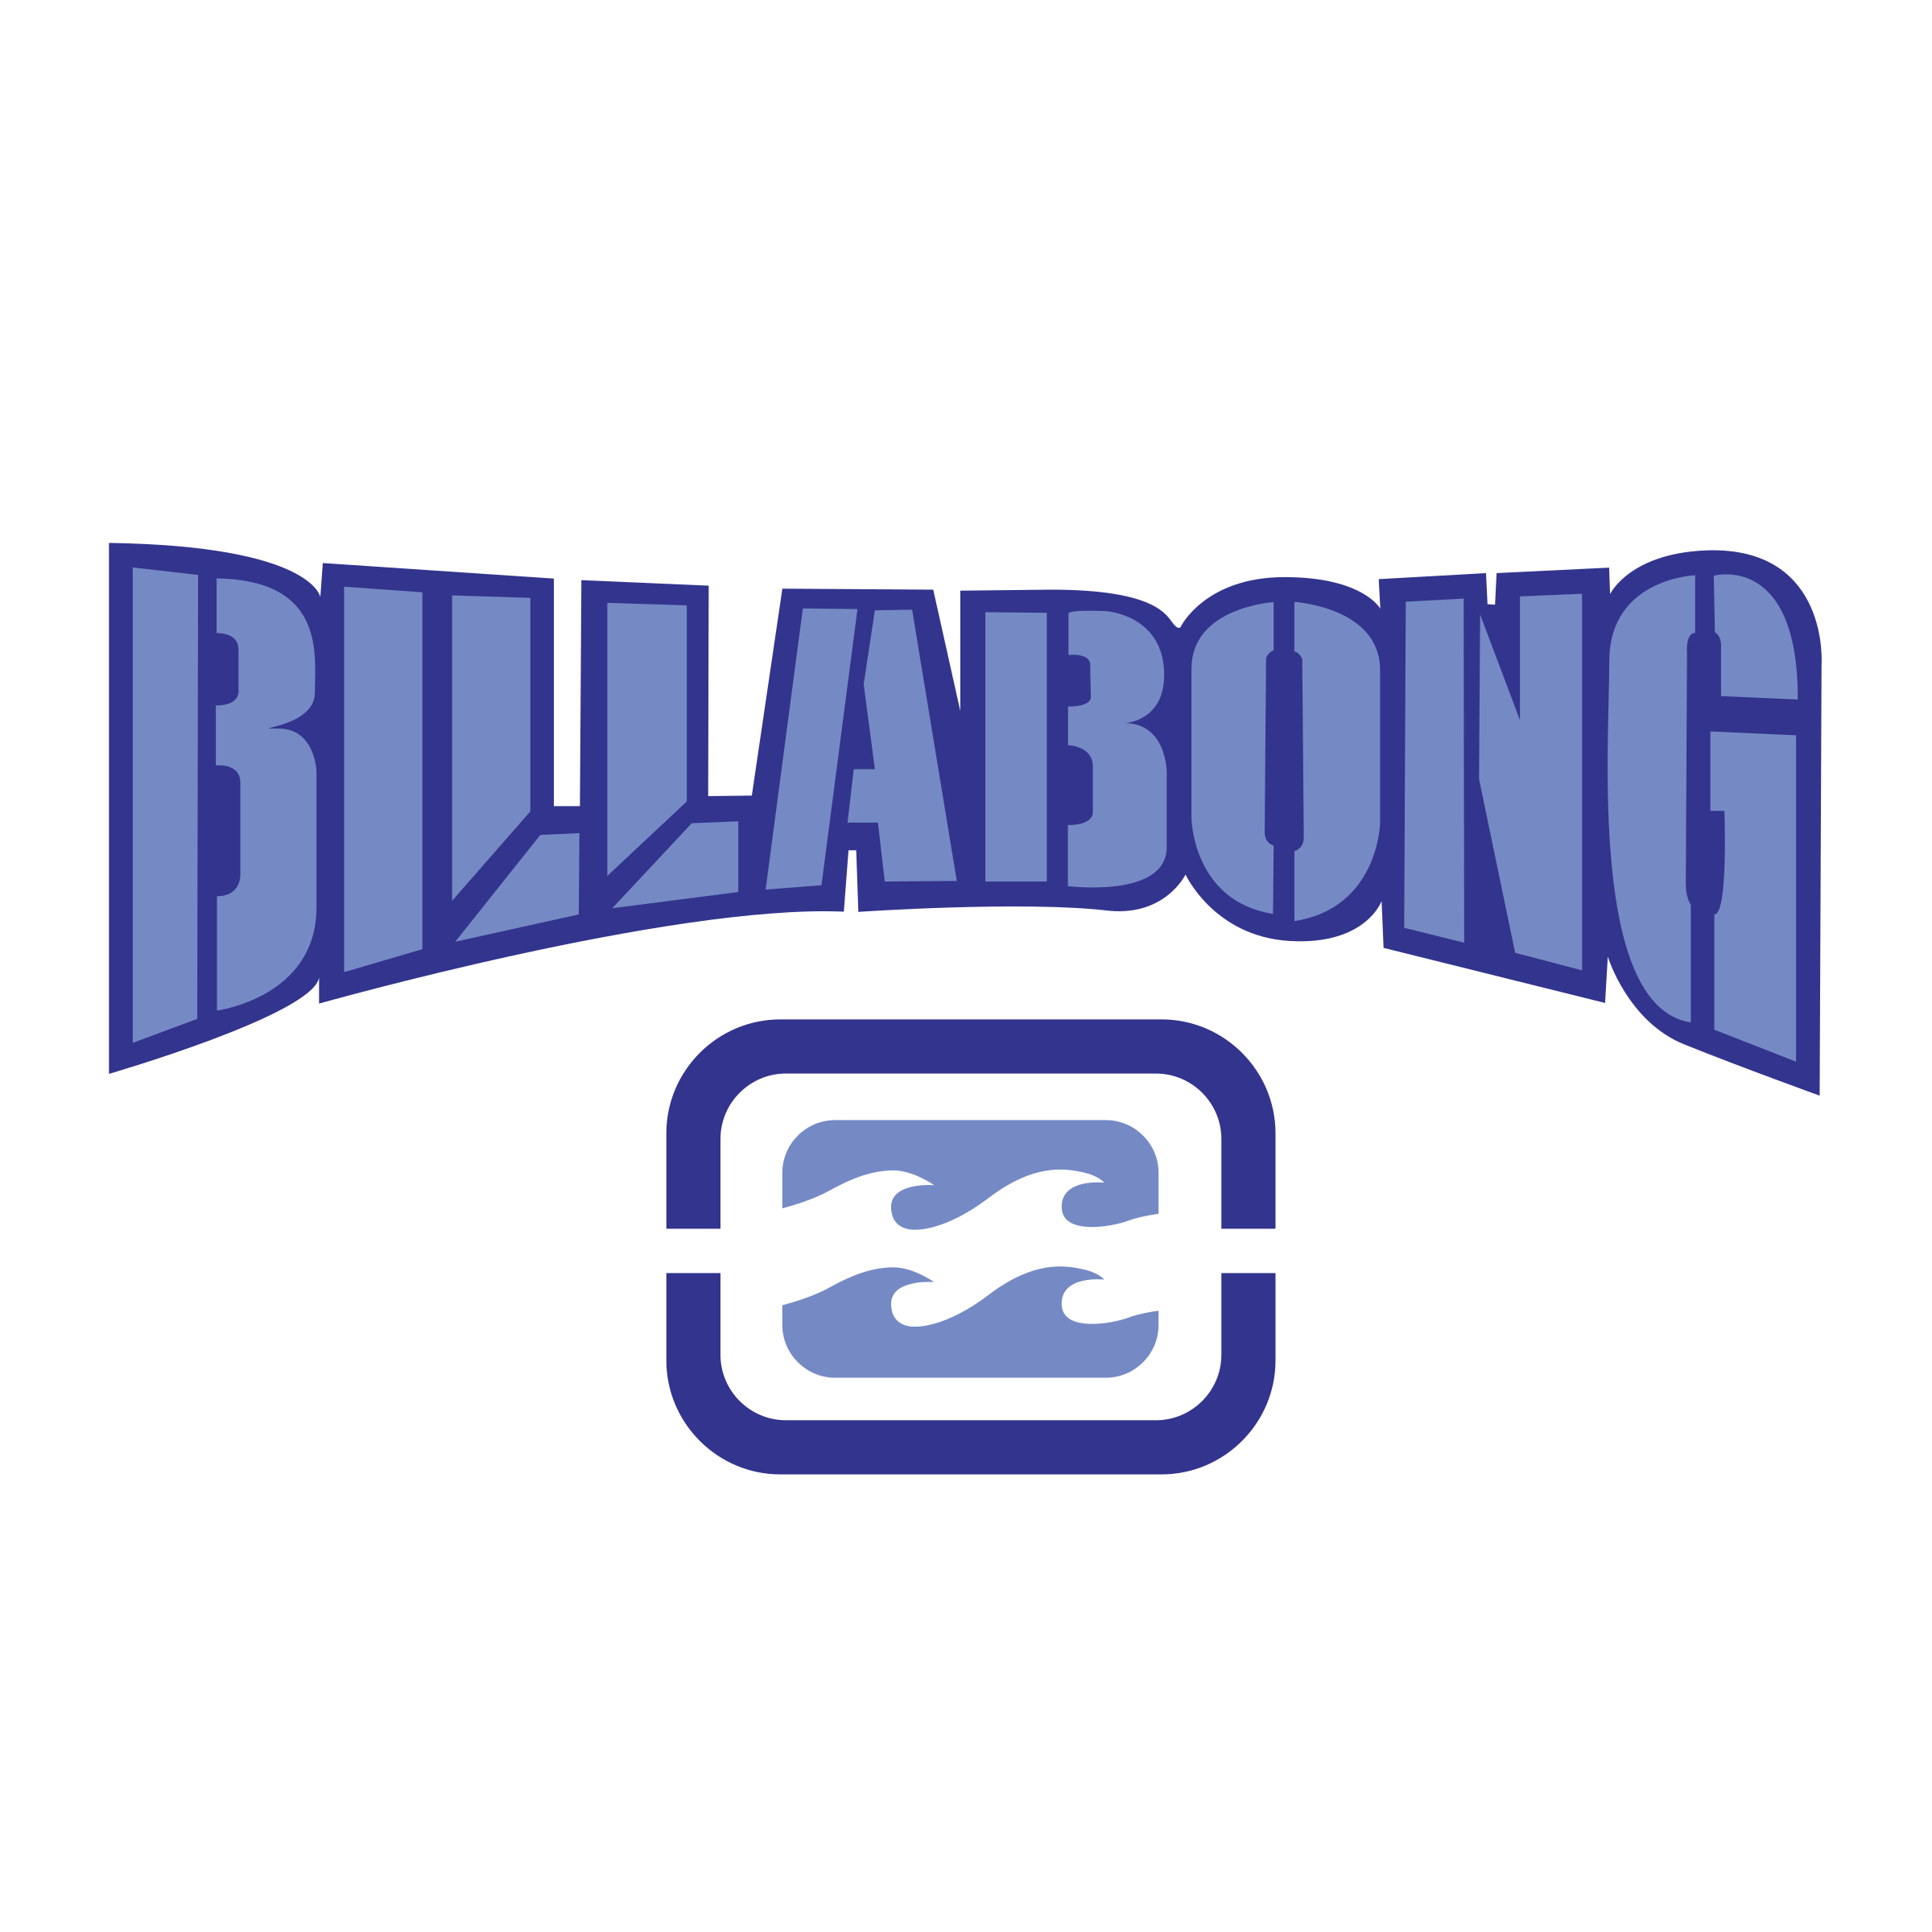 Billabong 01 Logo PNG Transparent & SVG Vector.